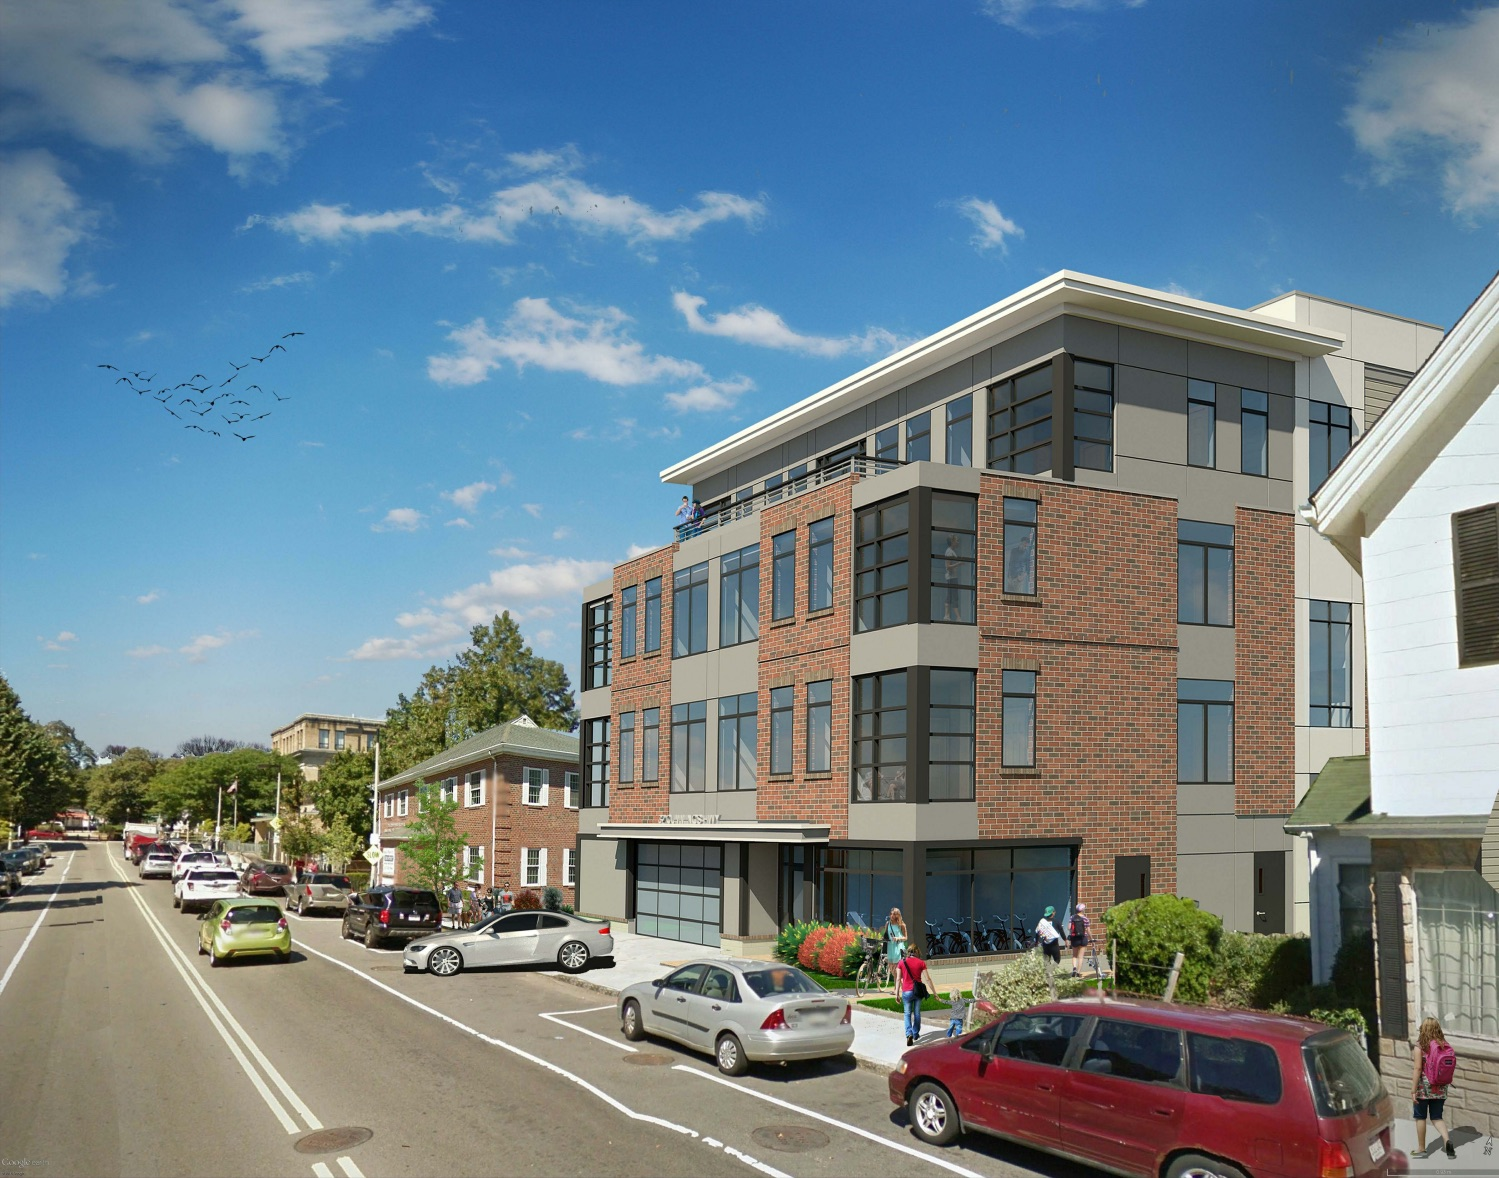 Apartments approved for Roslindales Wallpaper City Residents want